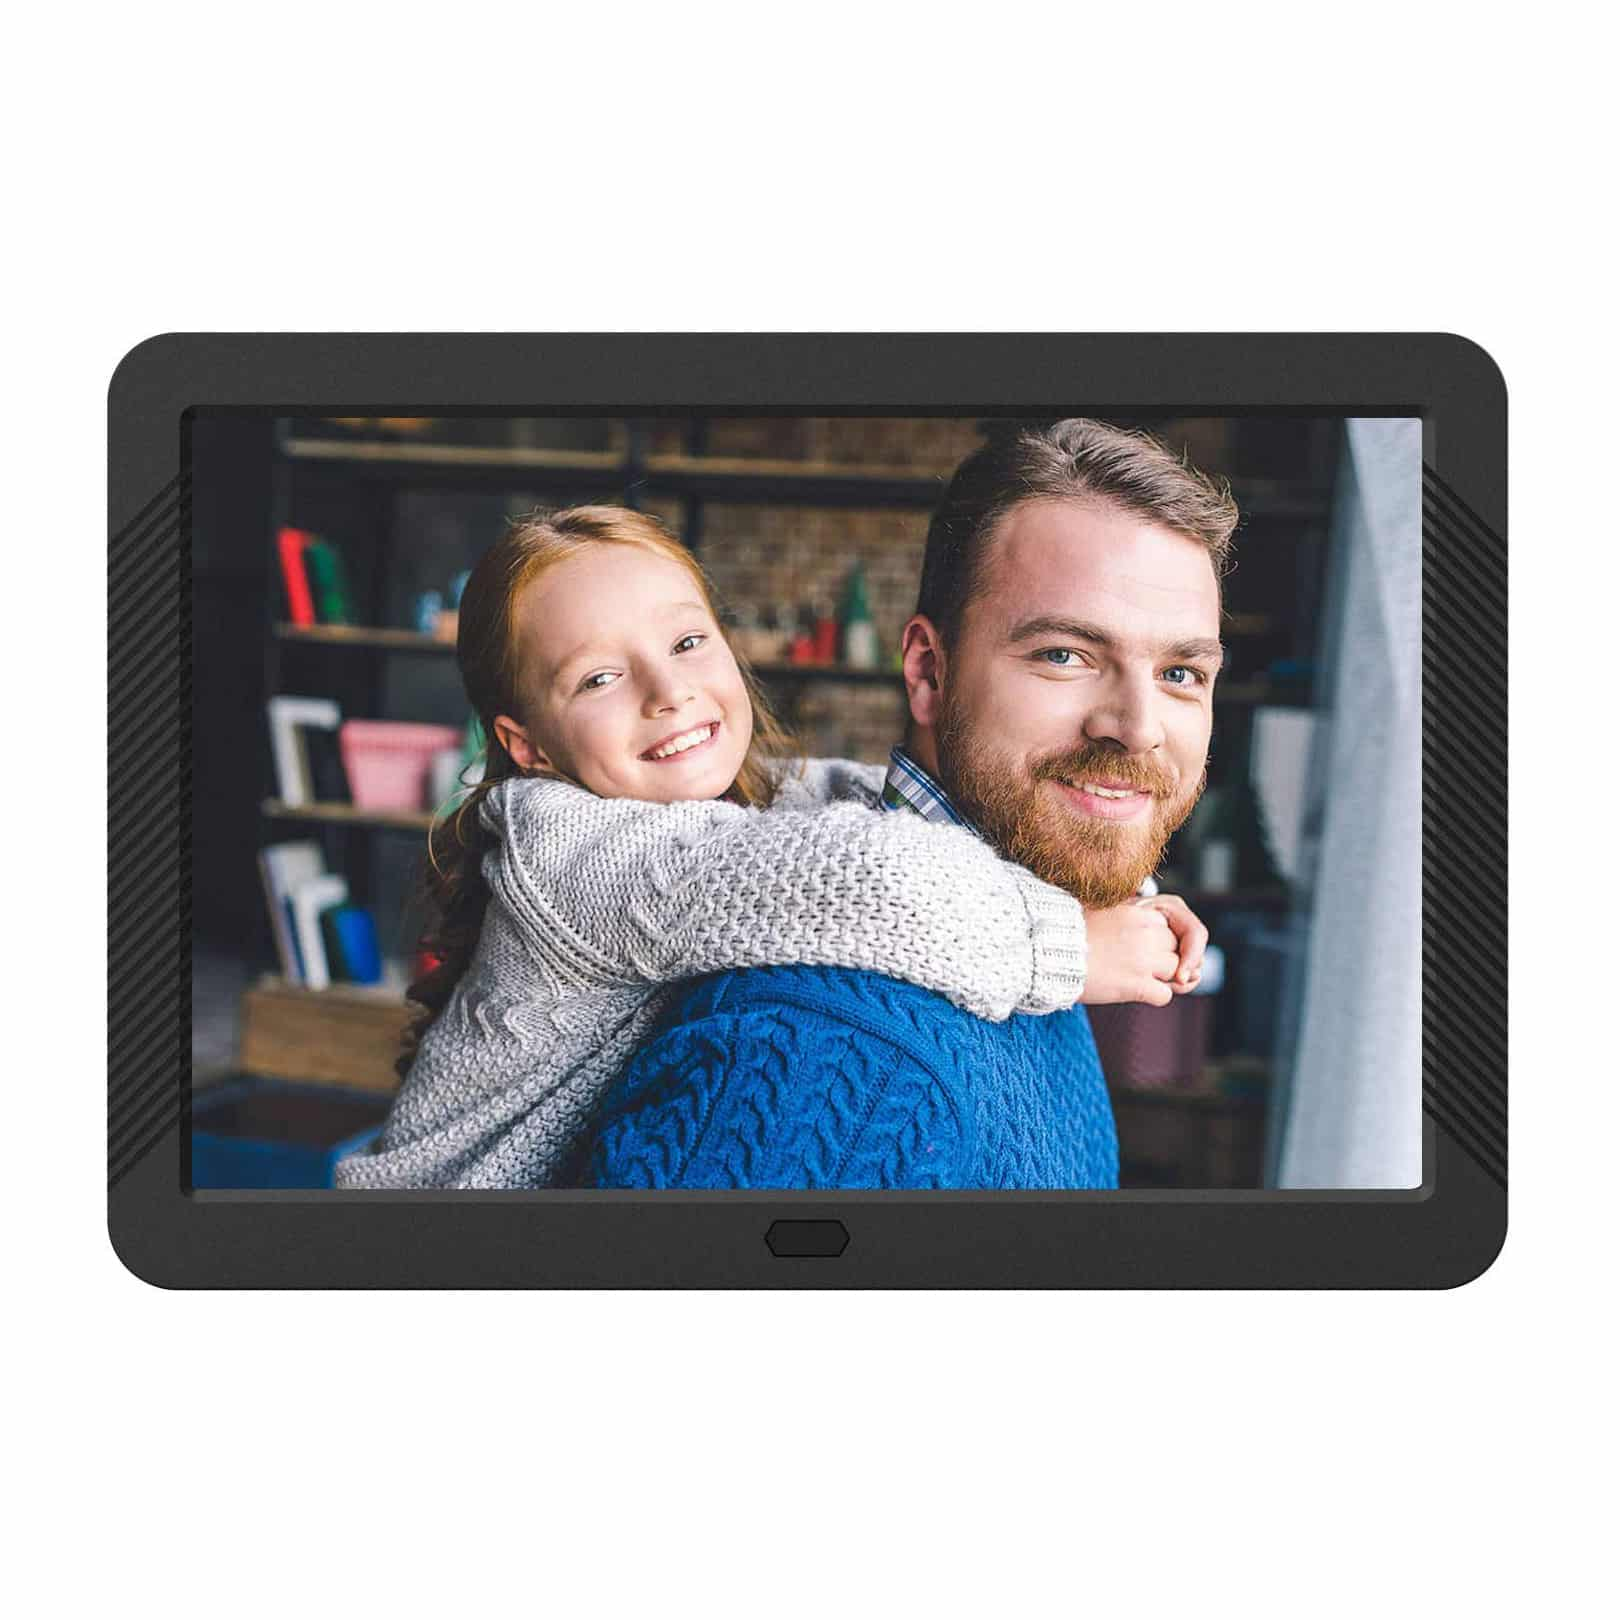 Atatat Digital Photo Frame